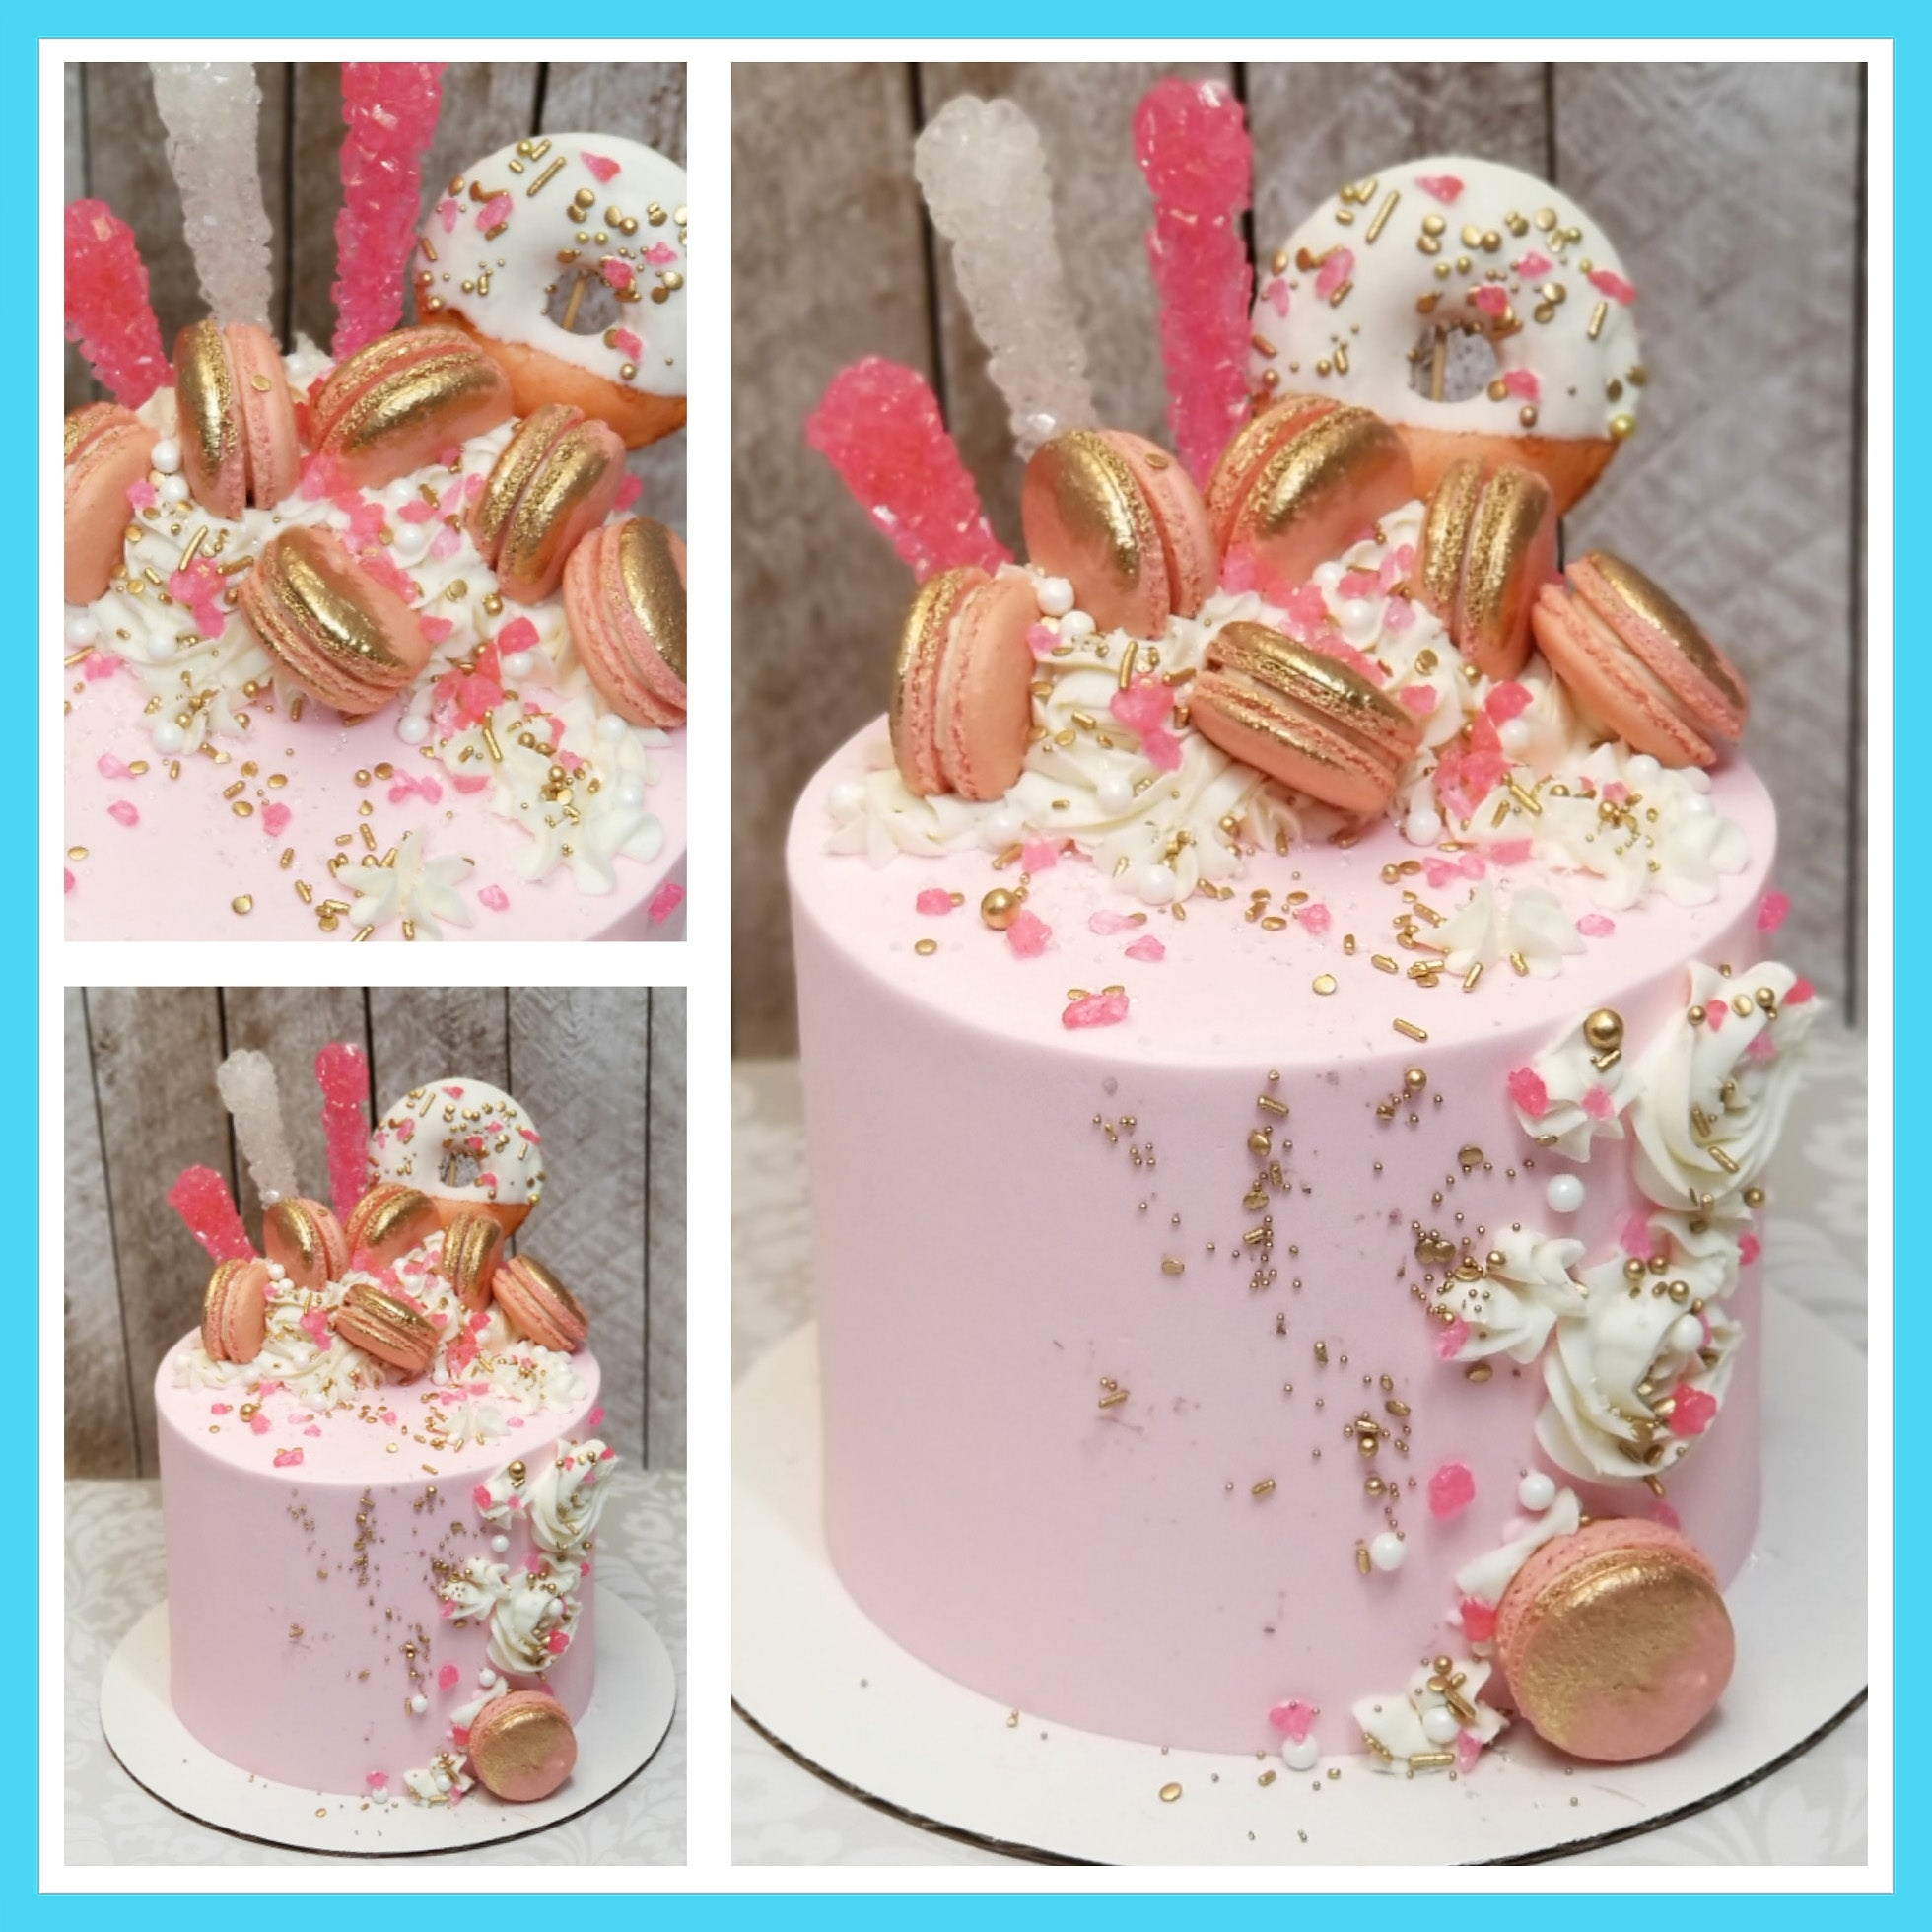 7a73738bc5a Bridal Shower · Girl · Sweet 16 · woman · Woman s · Pink and Gold Donut   Macaron  Cake